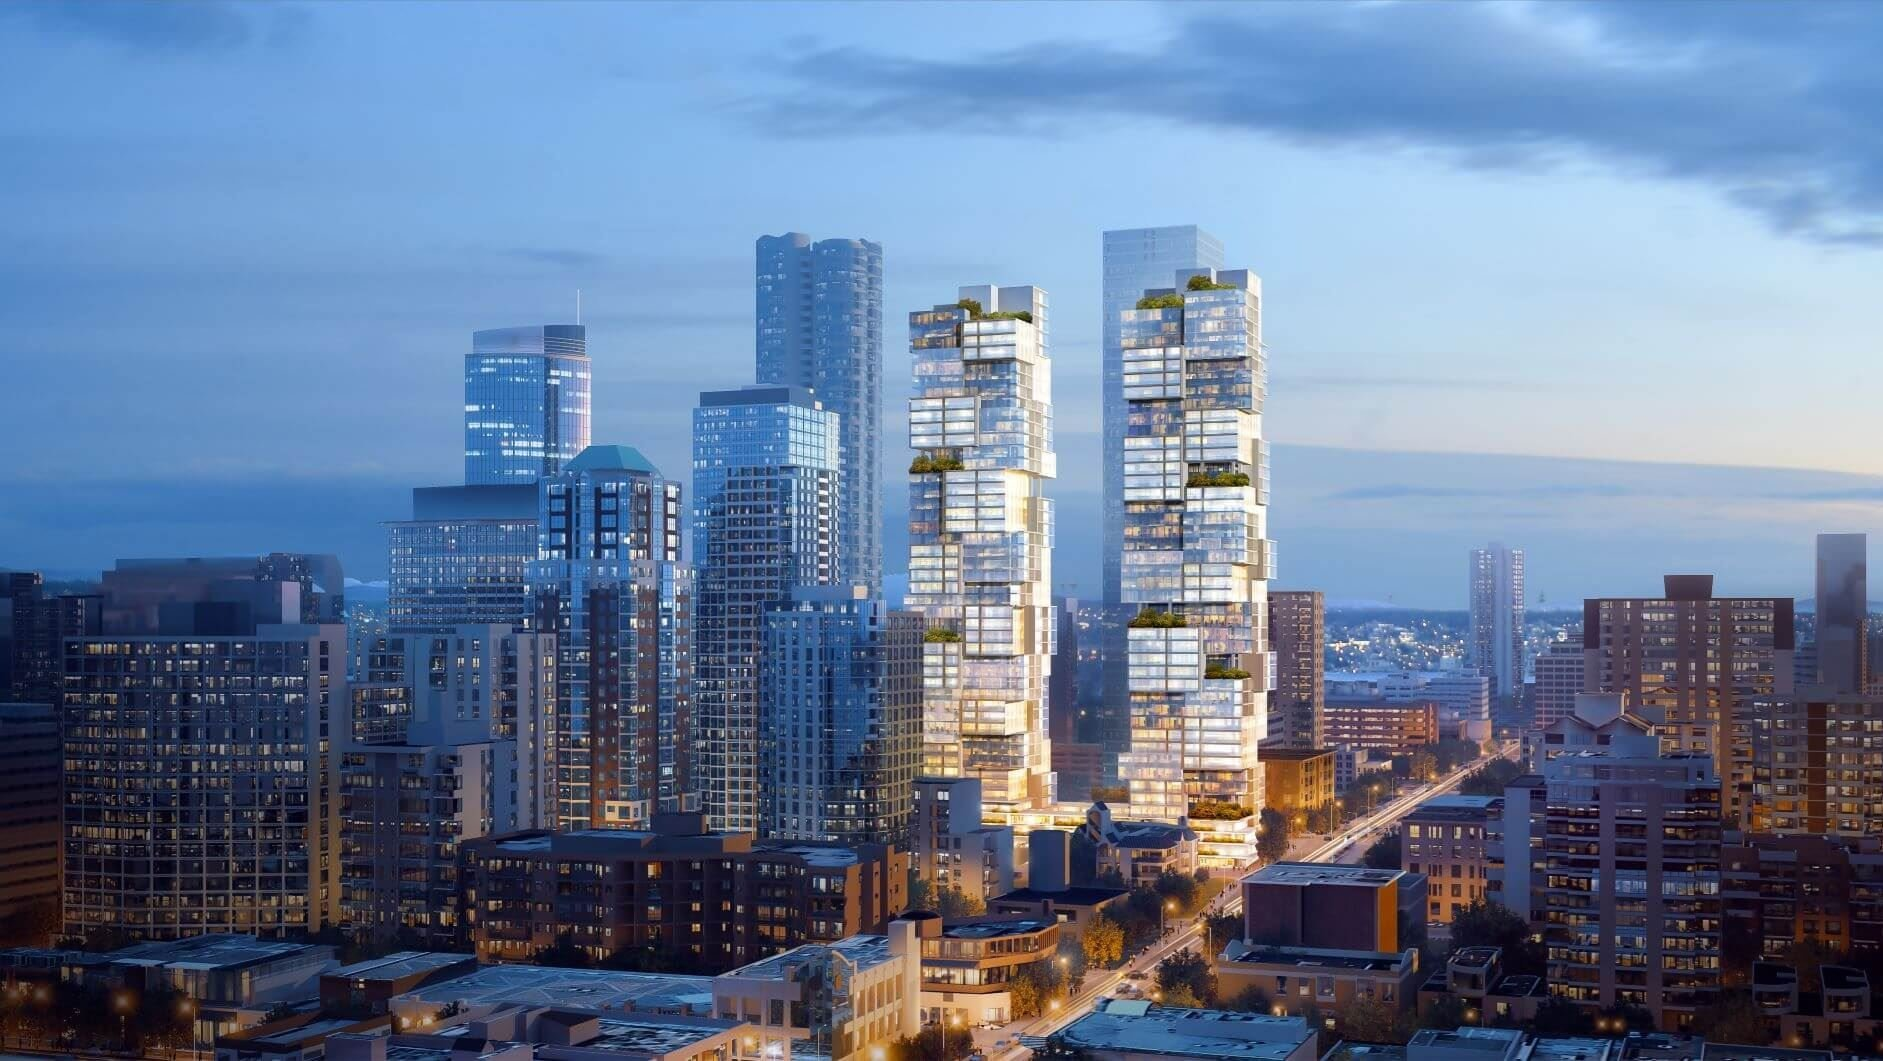 Barclay x Thurlow - 1070 Barclay St - Rendering - by Bosa Properties!